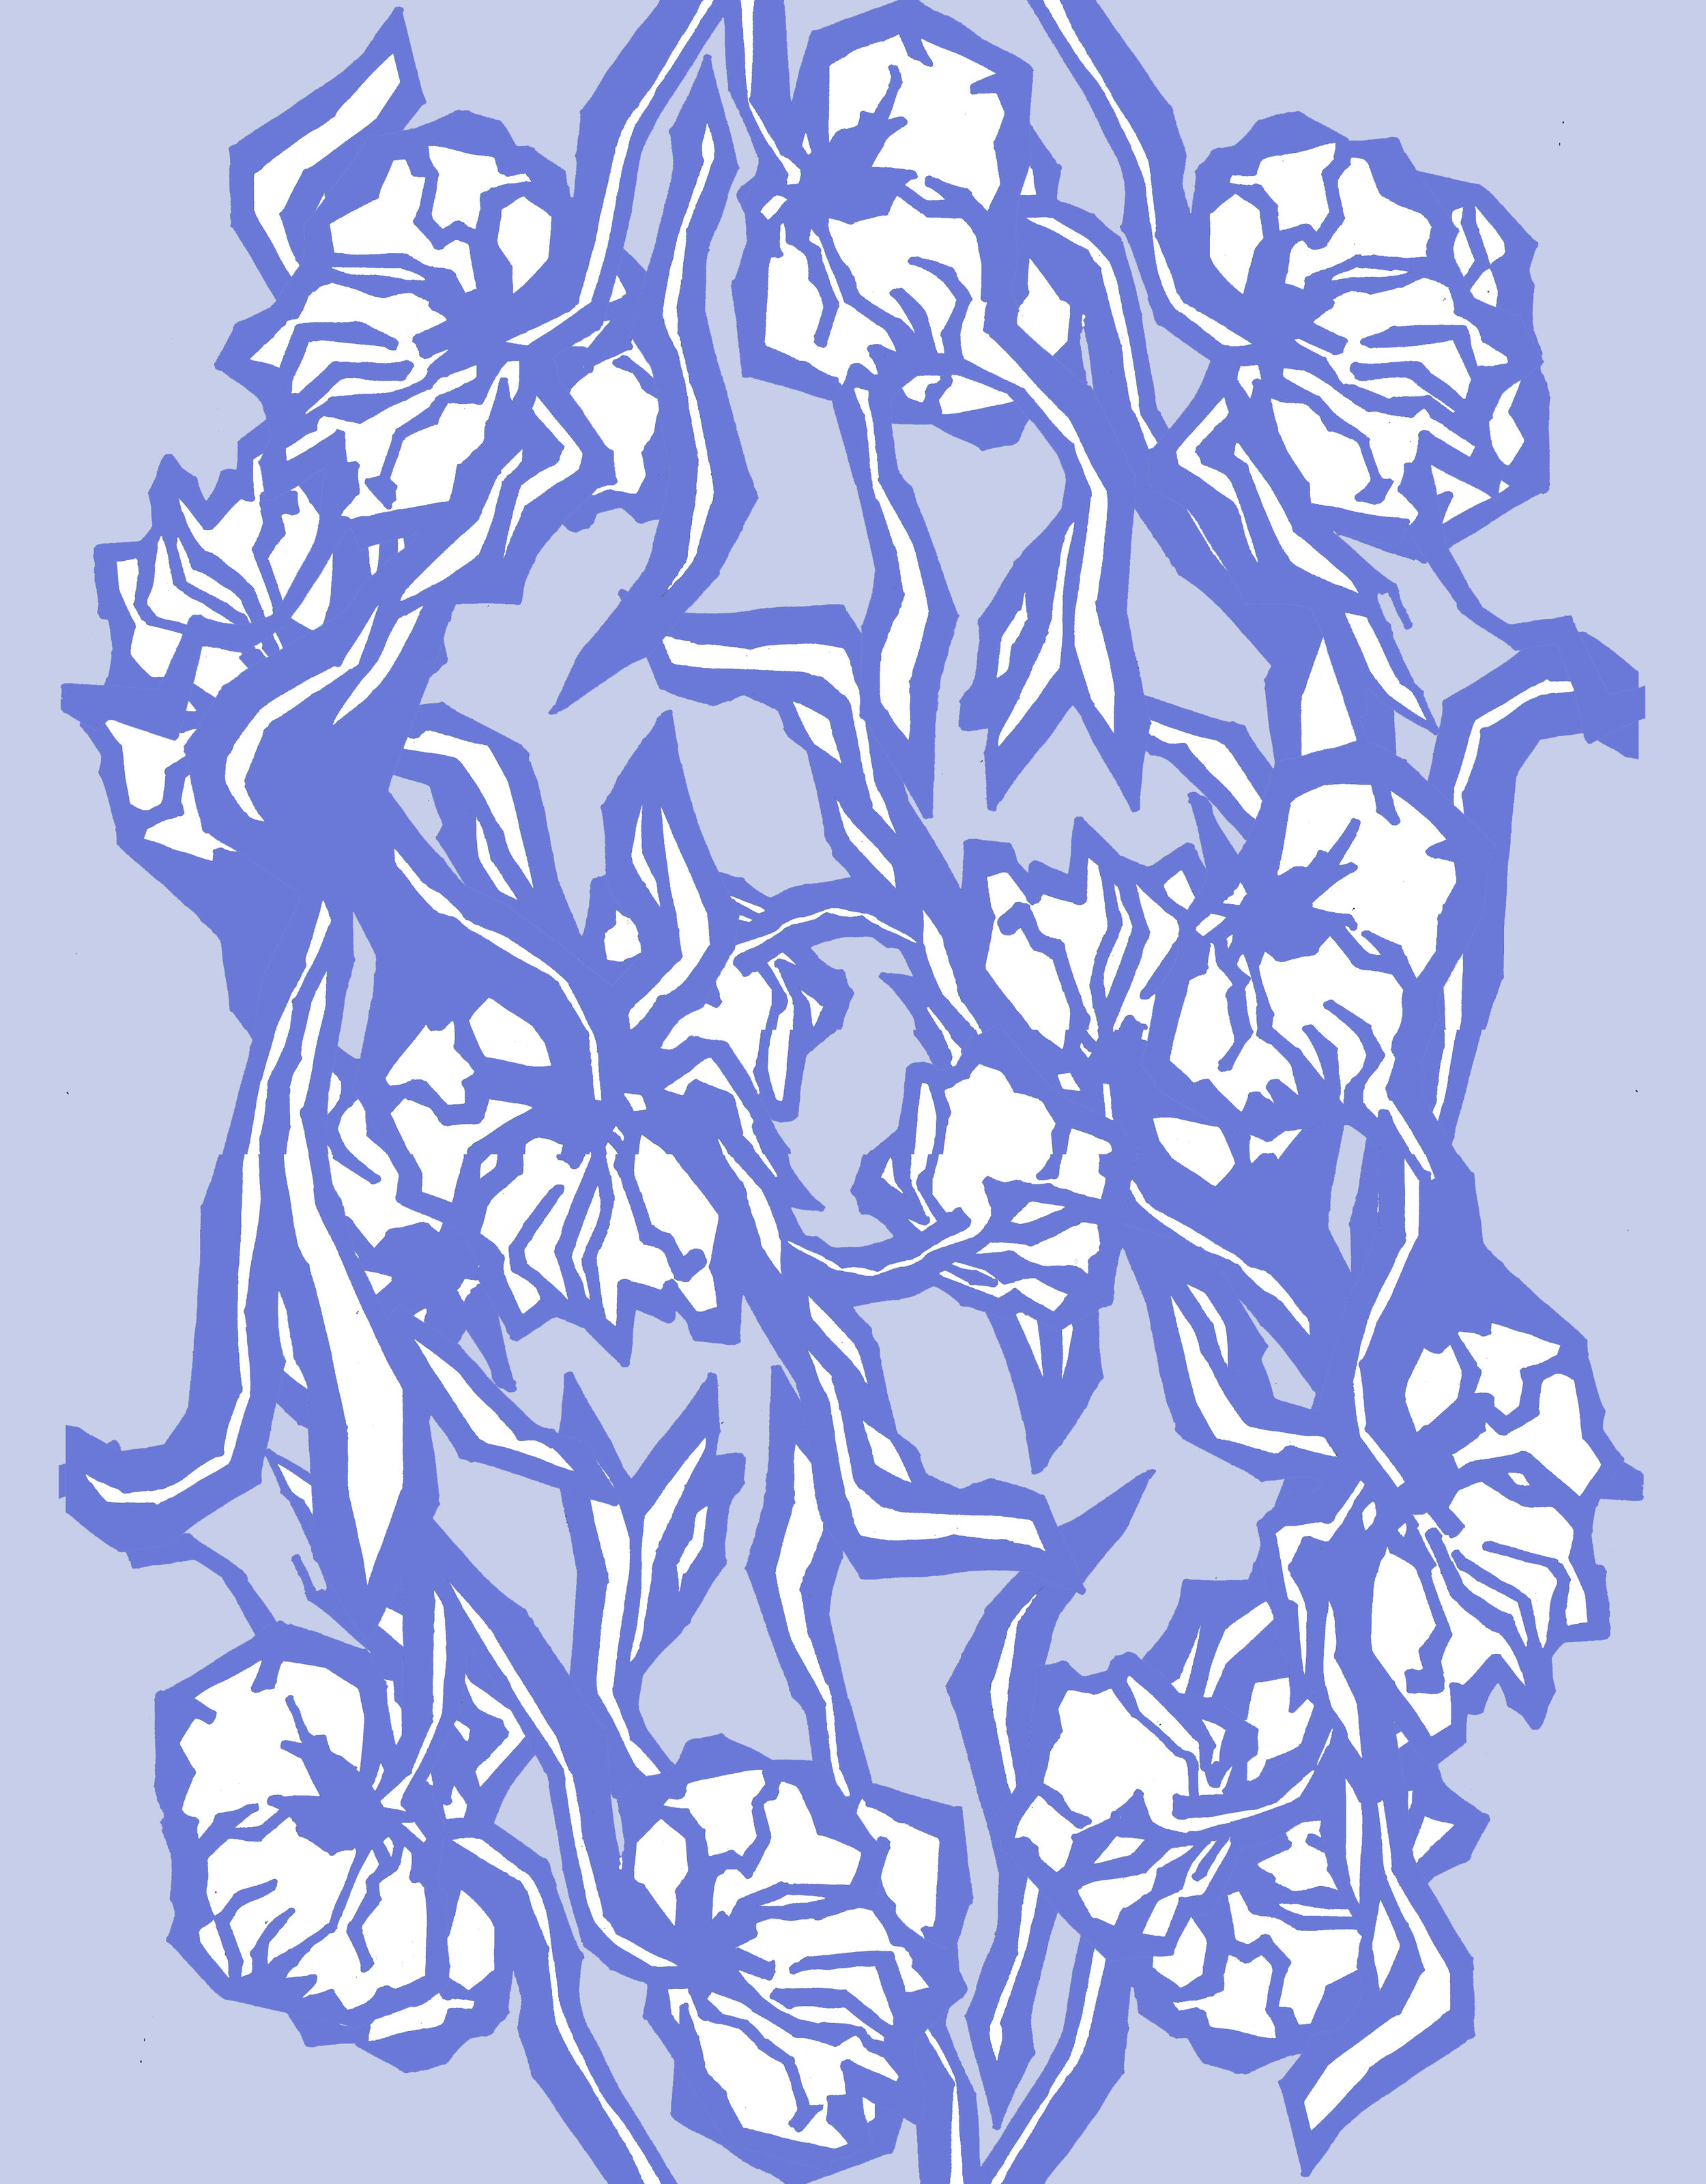 graphic floral 4.jpg